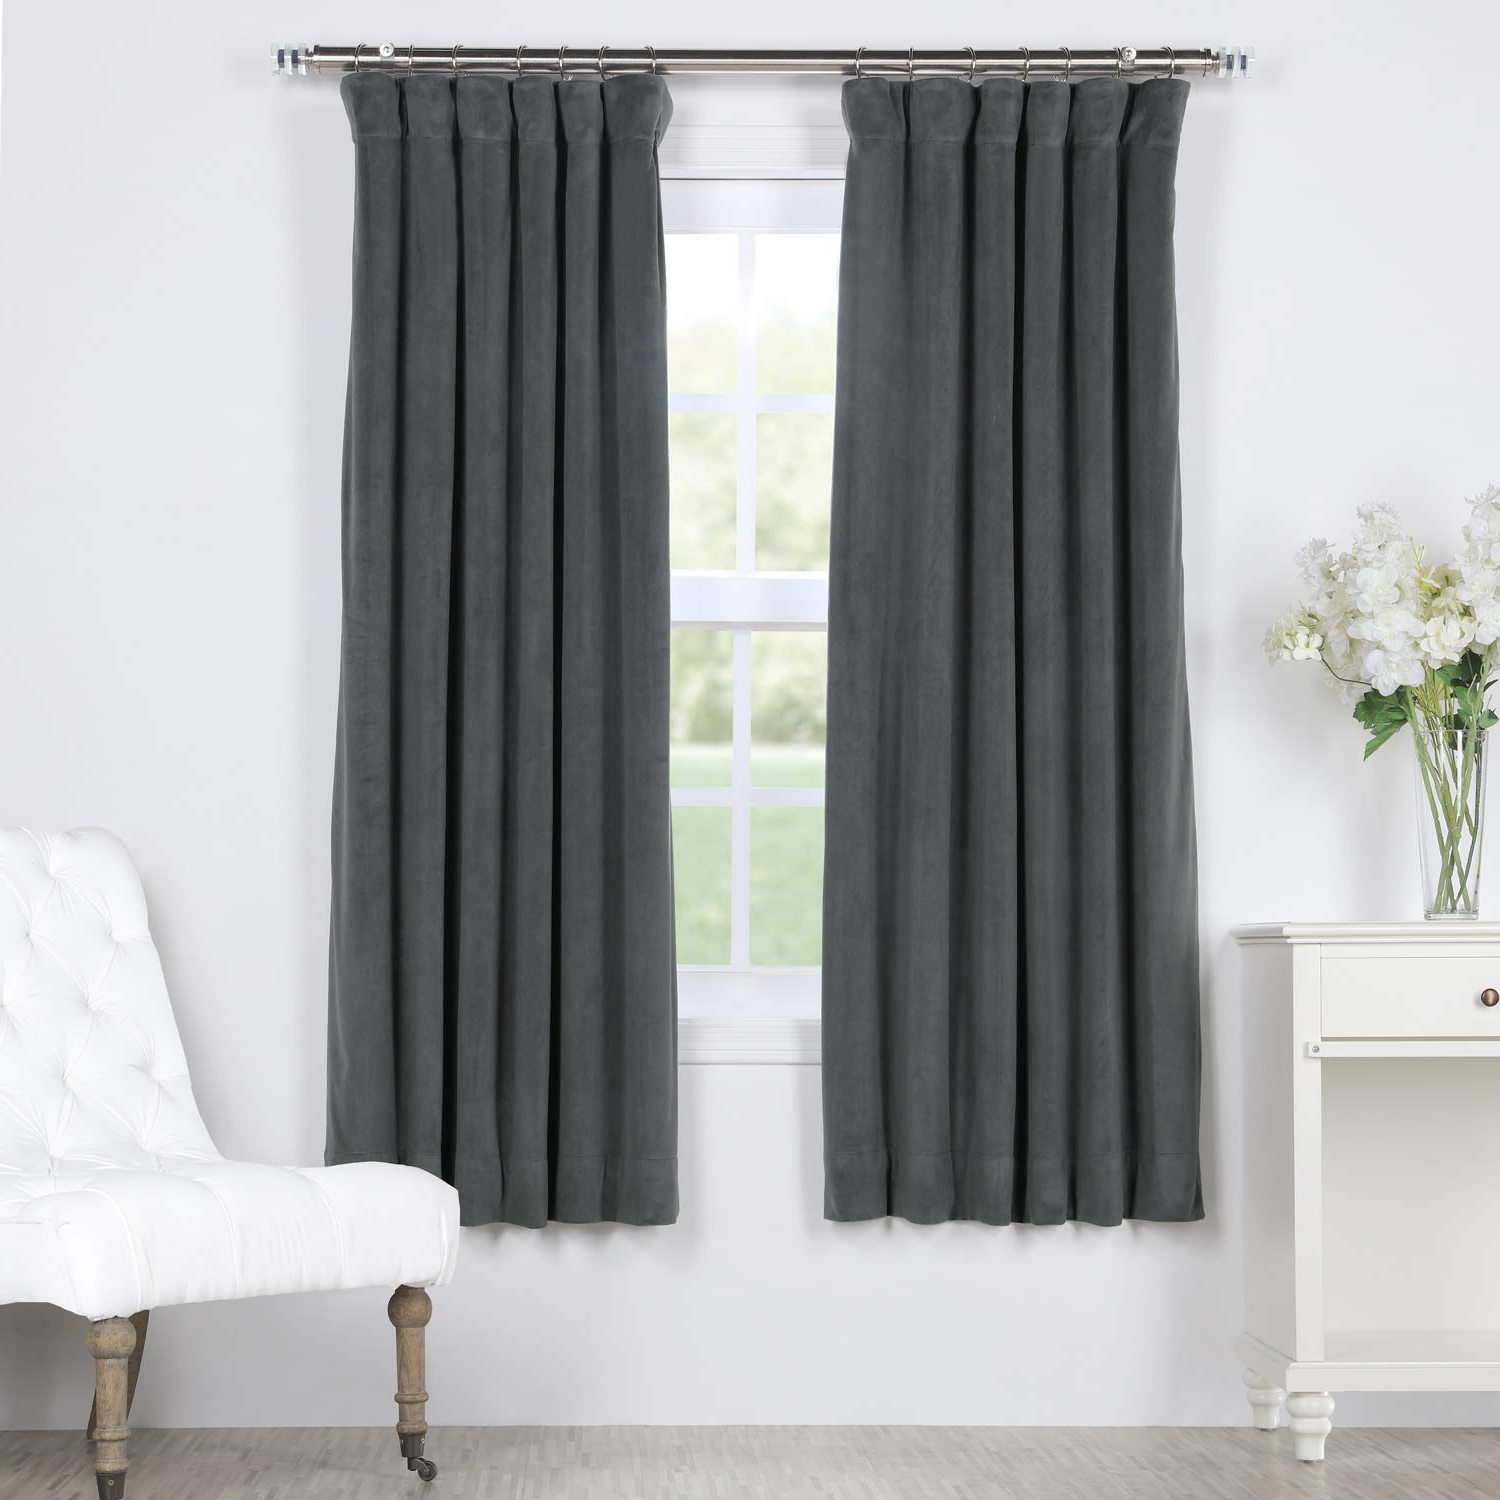 Signature Blackout Velvet Curtains For 2021 Amazon: Hpd Half Price Drapes Vpch 184005 63 Signature (View 9 of 20)